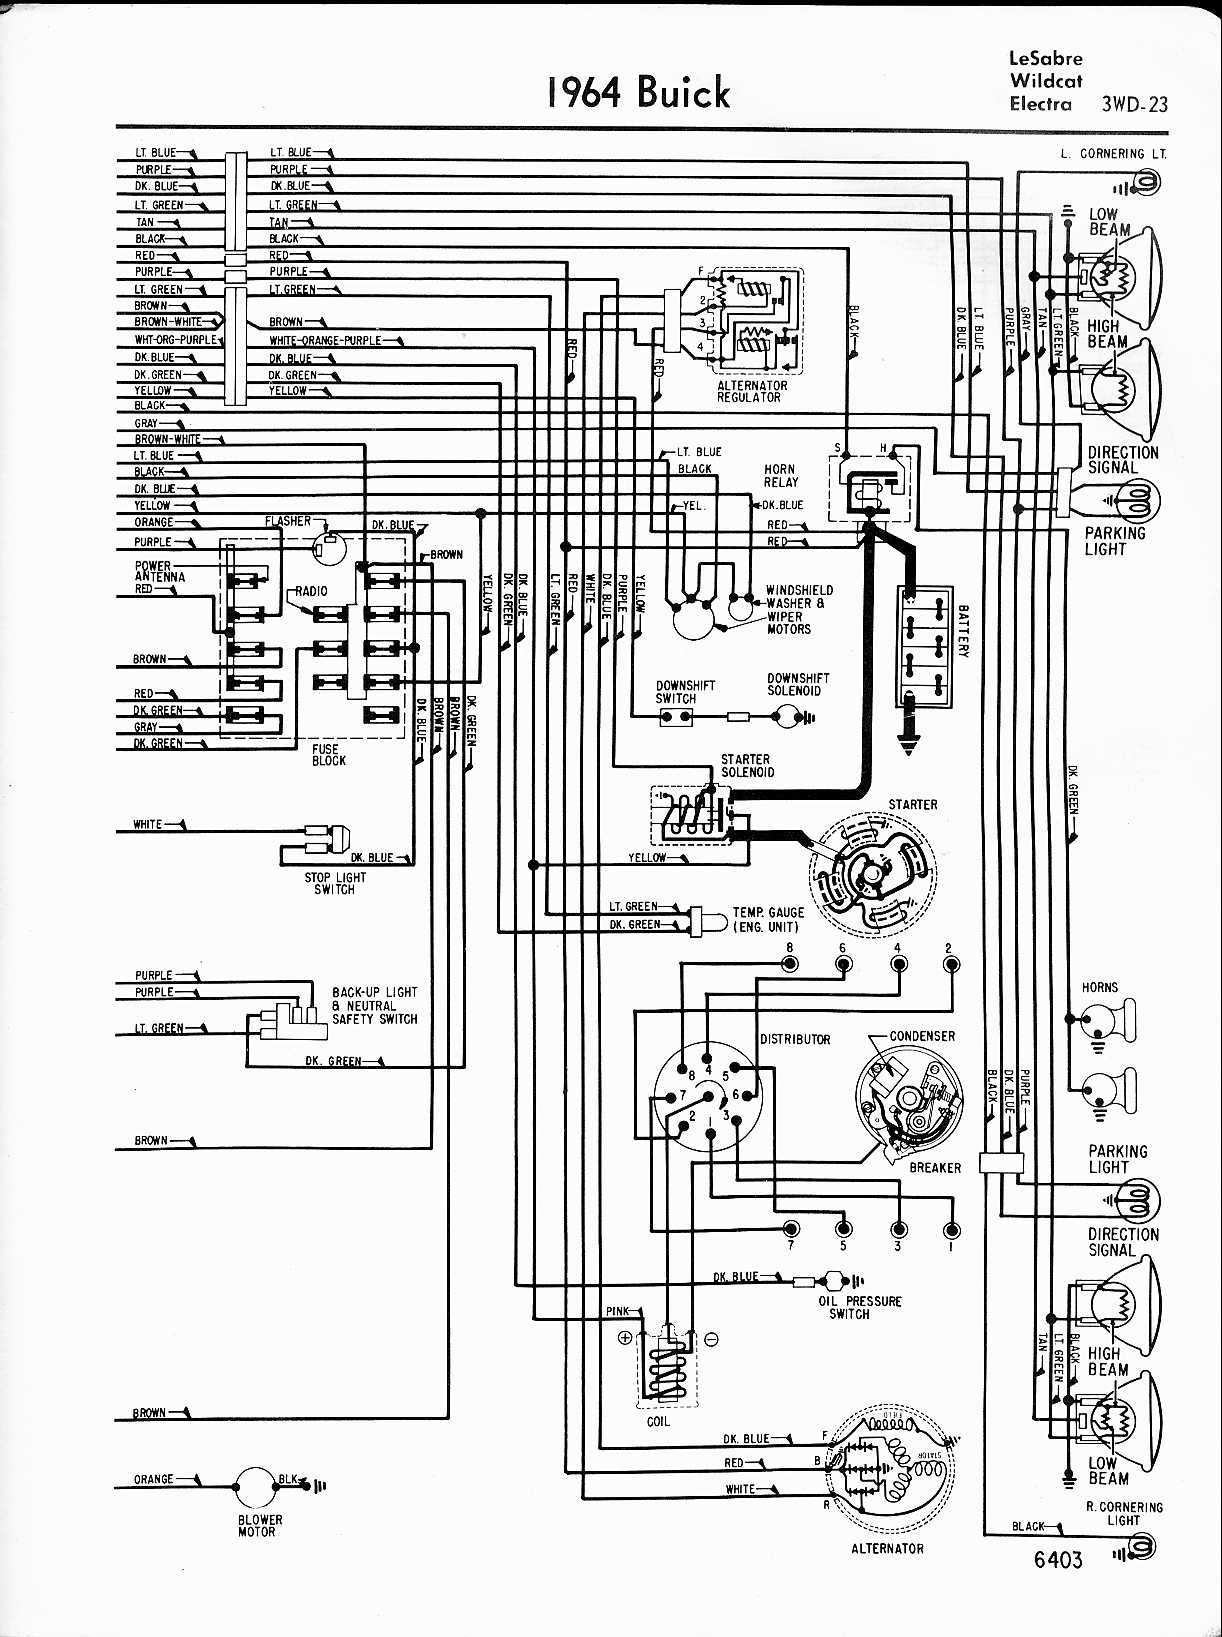 1995 Buick Riviera Wiring Schematic Wire Data Schema Neutral Symbol Diagrams For 1996 Circuit Diagram Symbols U2022 Rh Veturecapitaltrust Co 1994